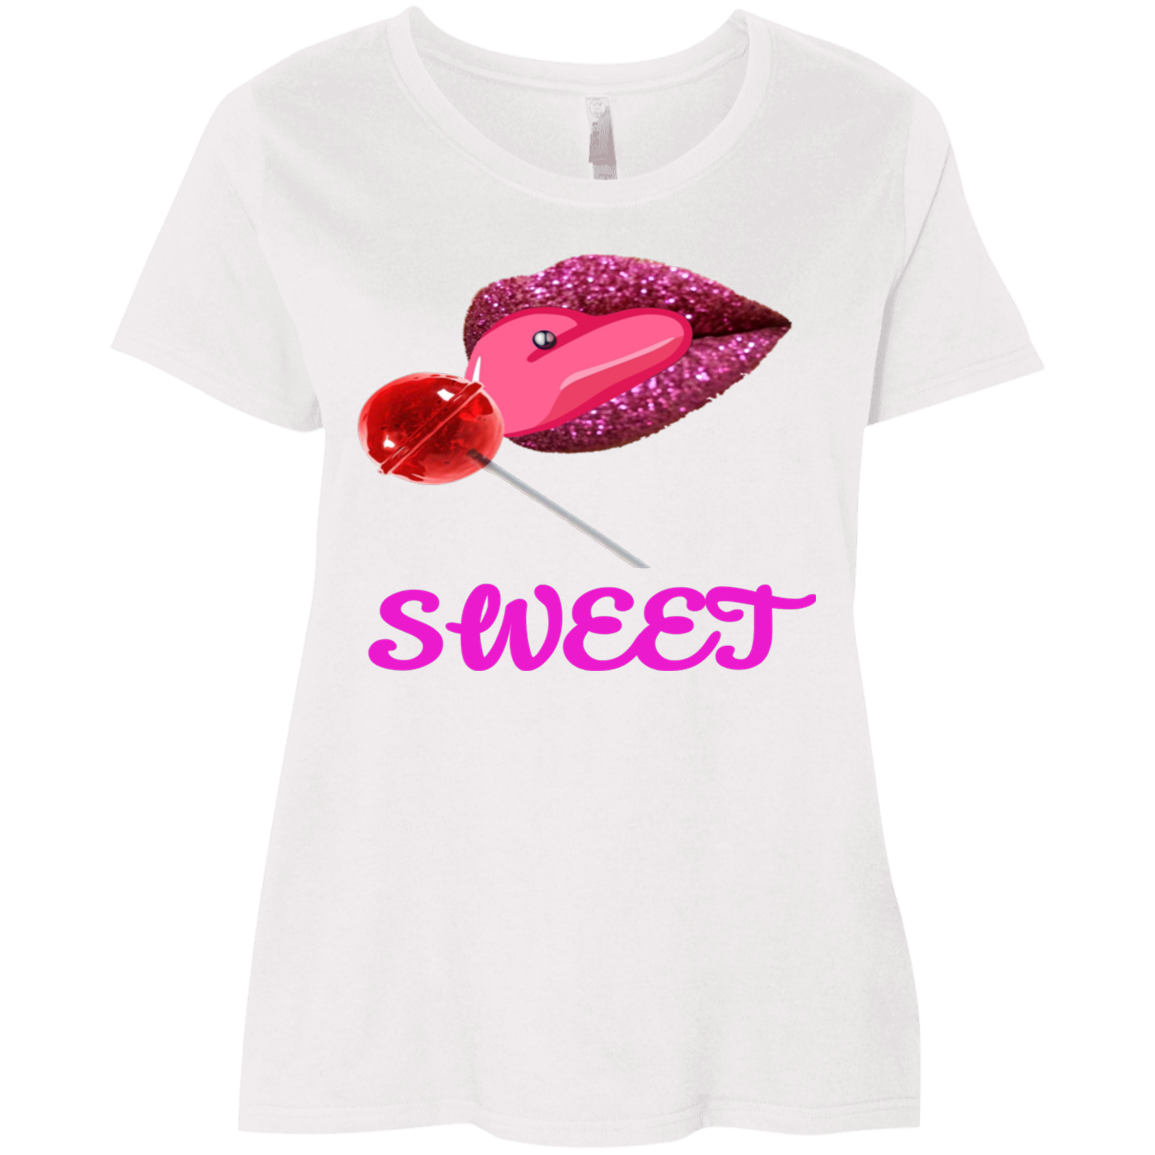 Sweet Clothing Ladies' Curvy T-Shirt - Tie-Fly